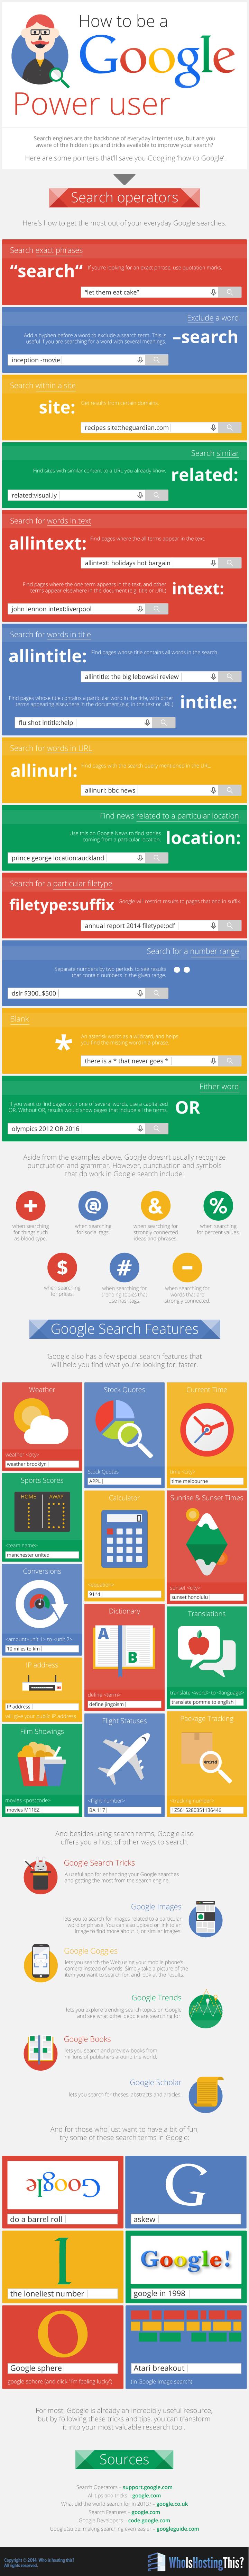 Infografik Google Power User